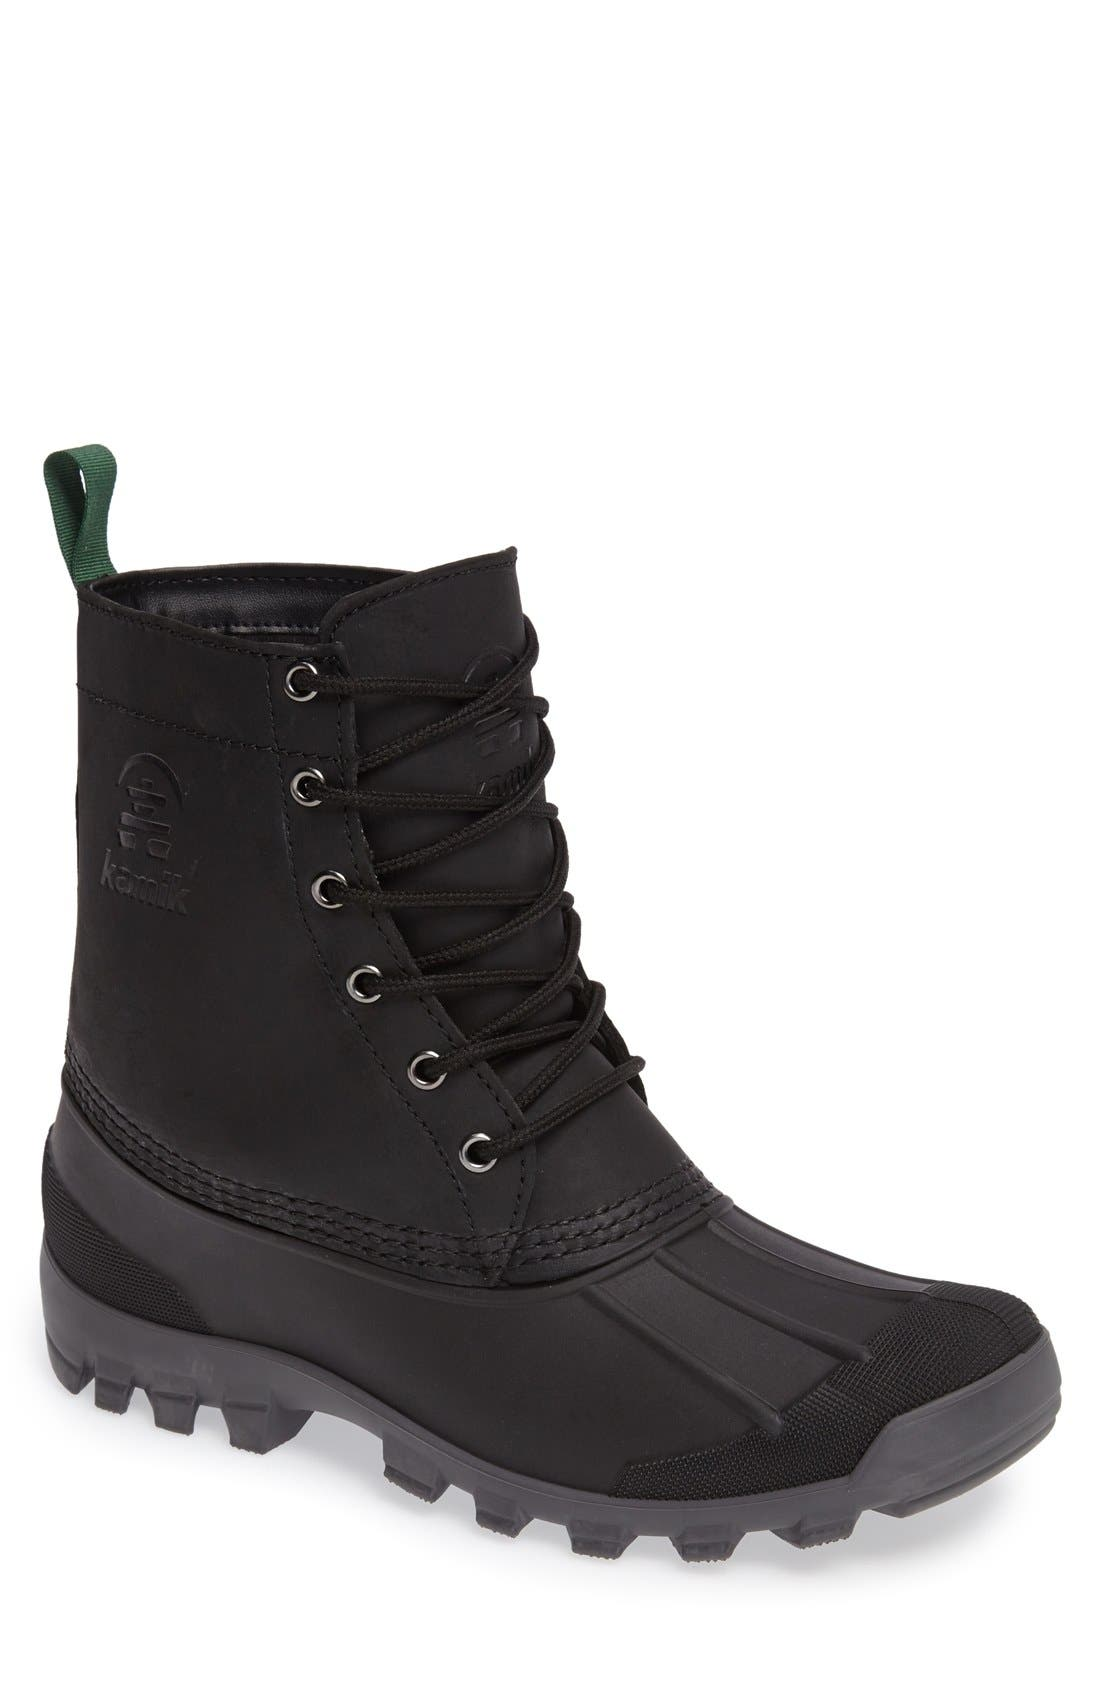 Alternate Image 1 Selected - Kamik Yukon6 Waterproof Work Boot (Men)